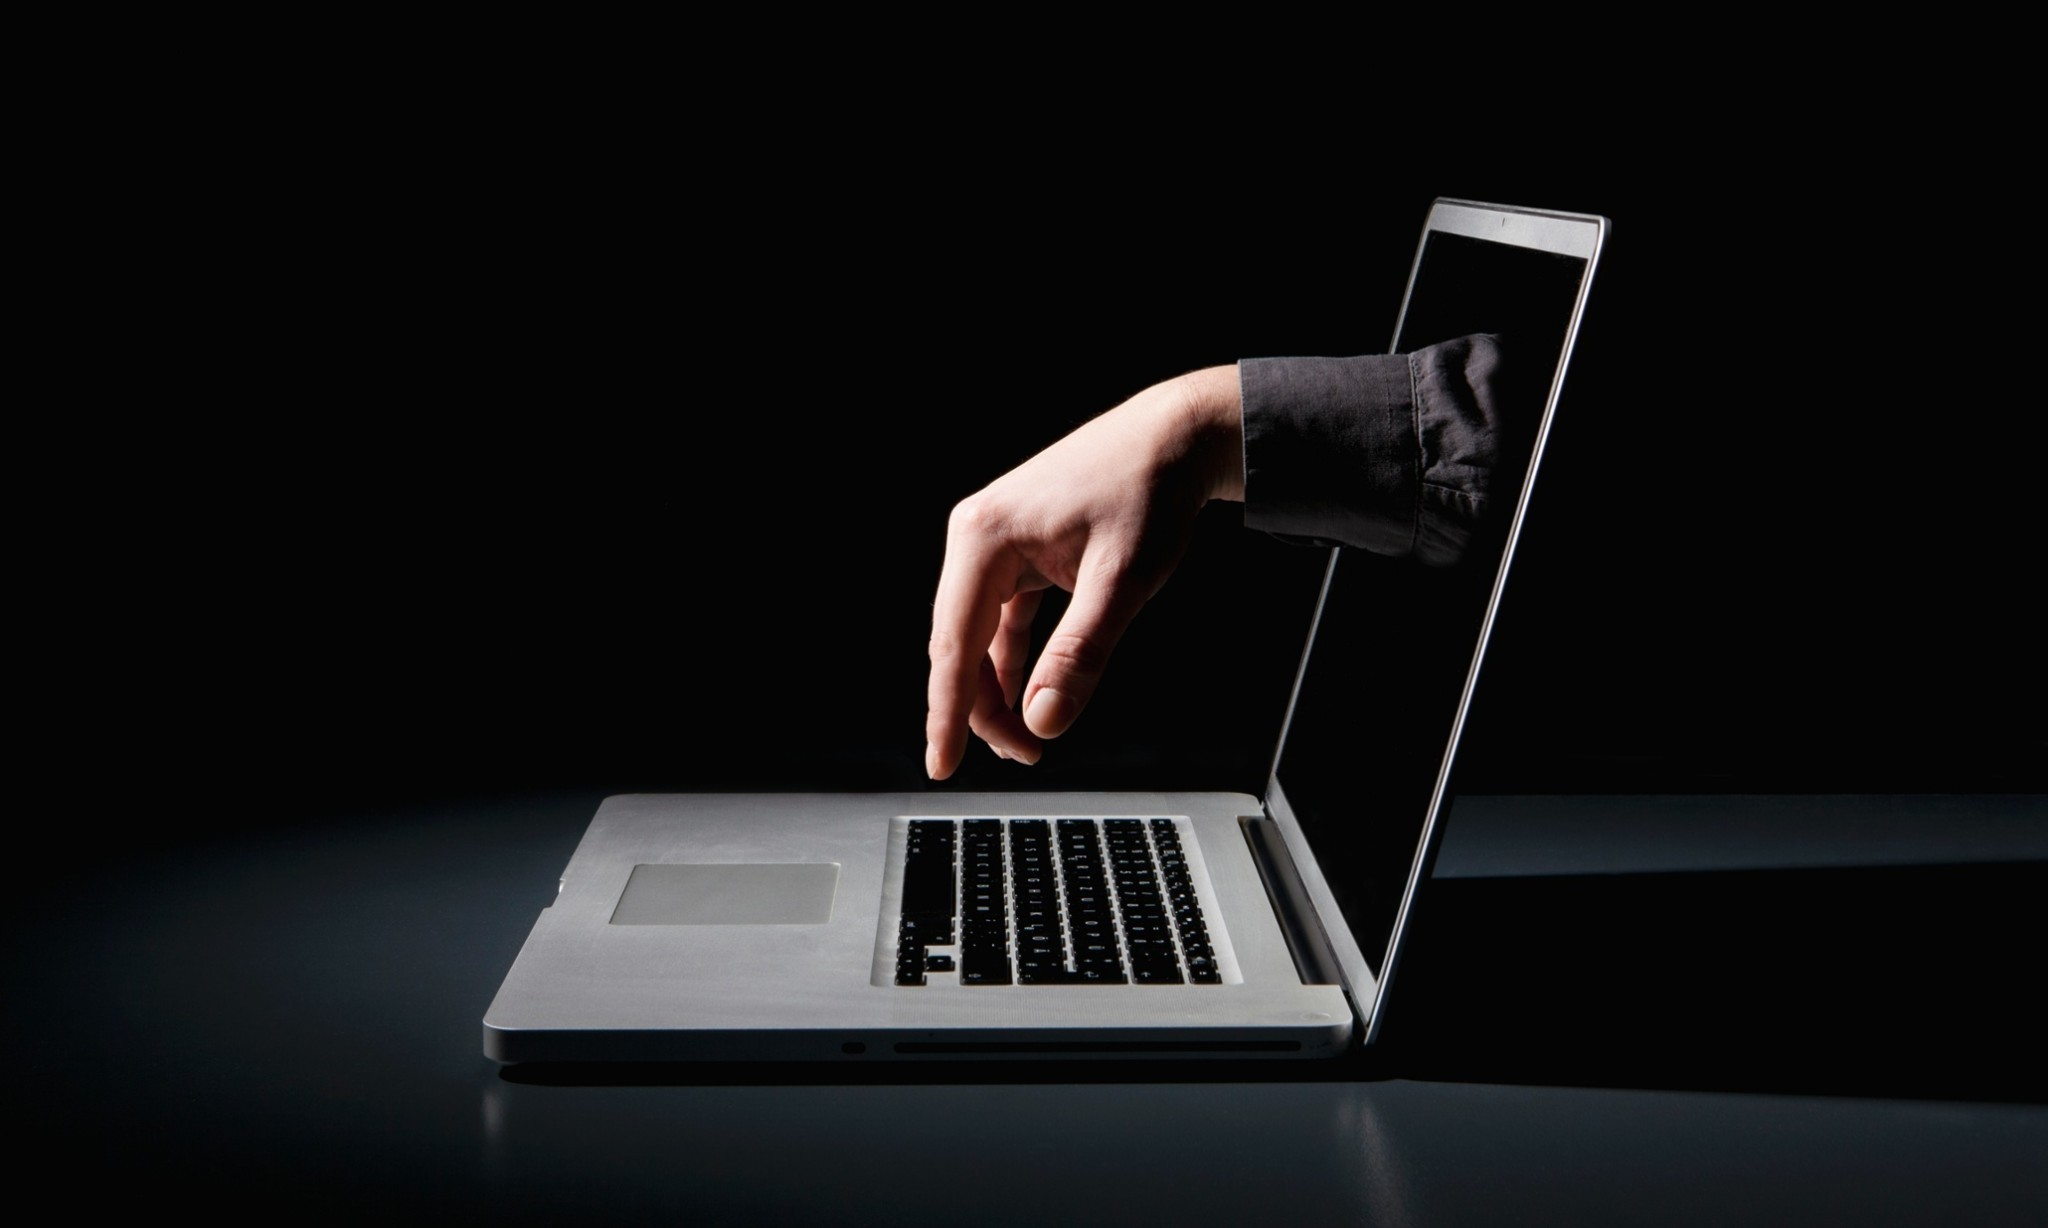 'Regin' malware comes from western intelligence agency, say experts